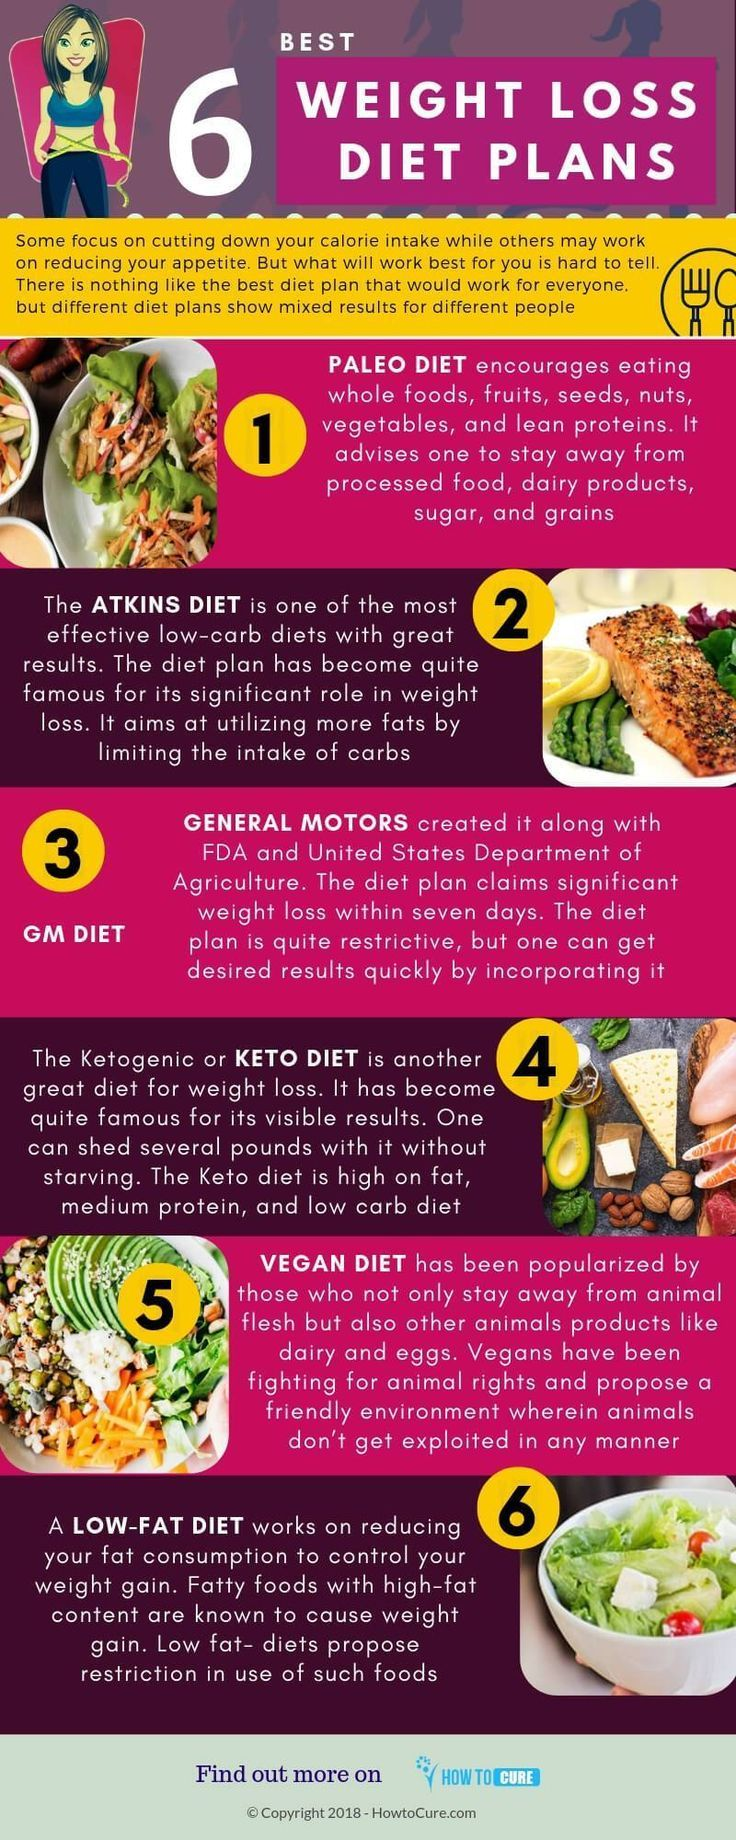 how does quick weight loss diet work